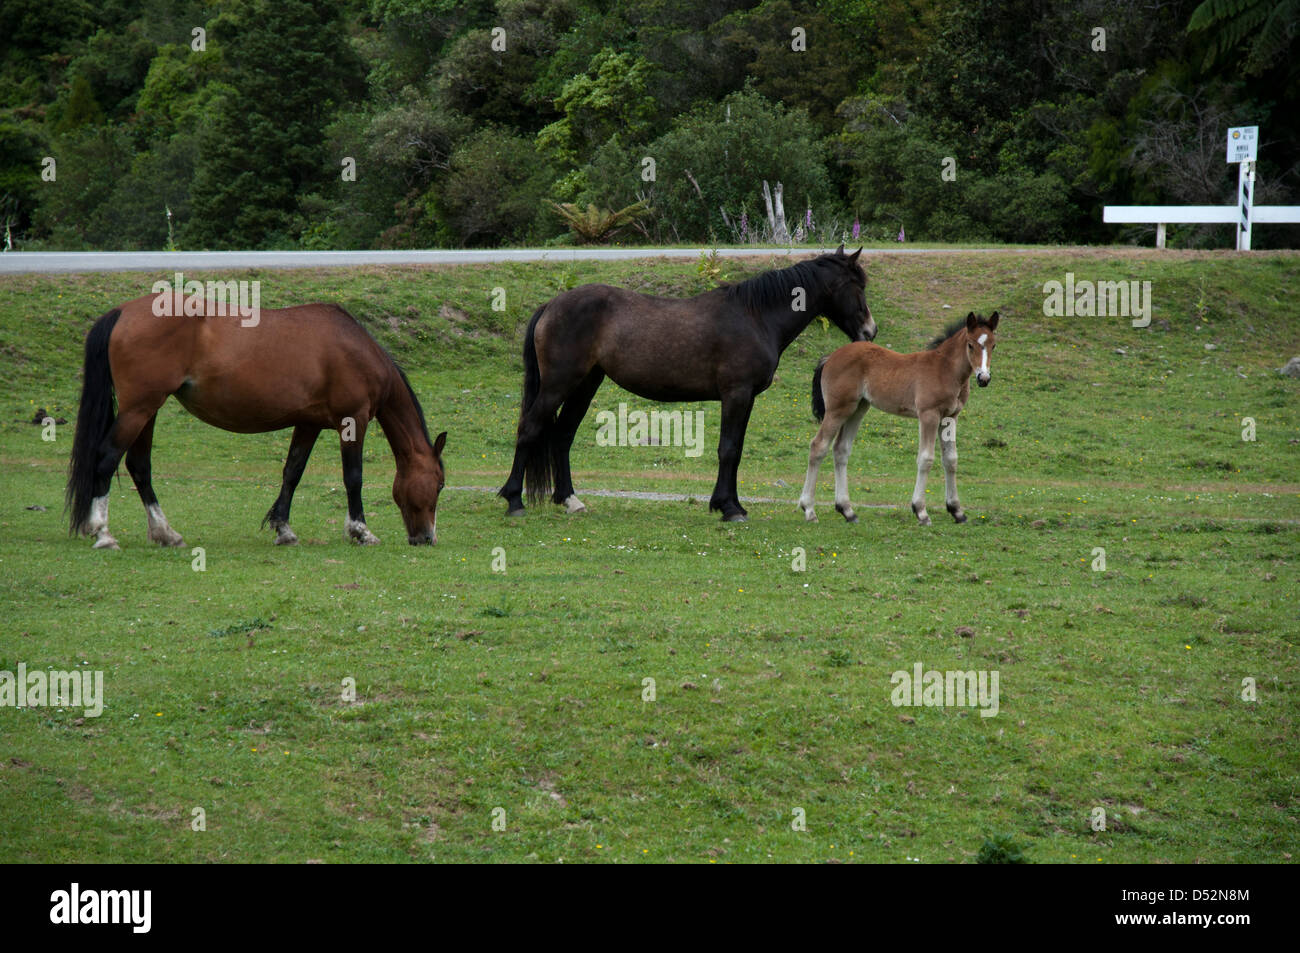 Horses with a foal grazing on a pasture near State Highway 38 in New Zealand's Bay of Plenty region.  Pferde - Stock Image